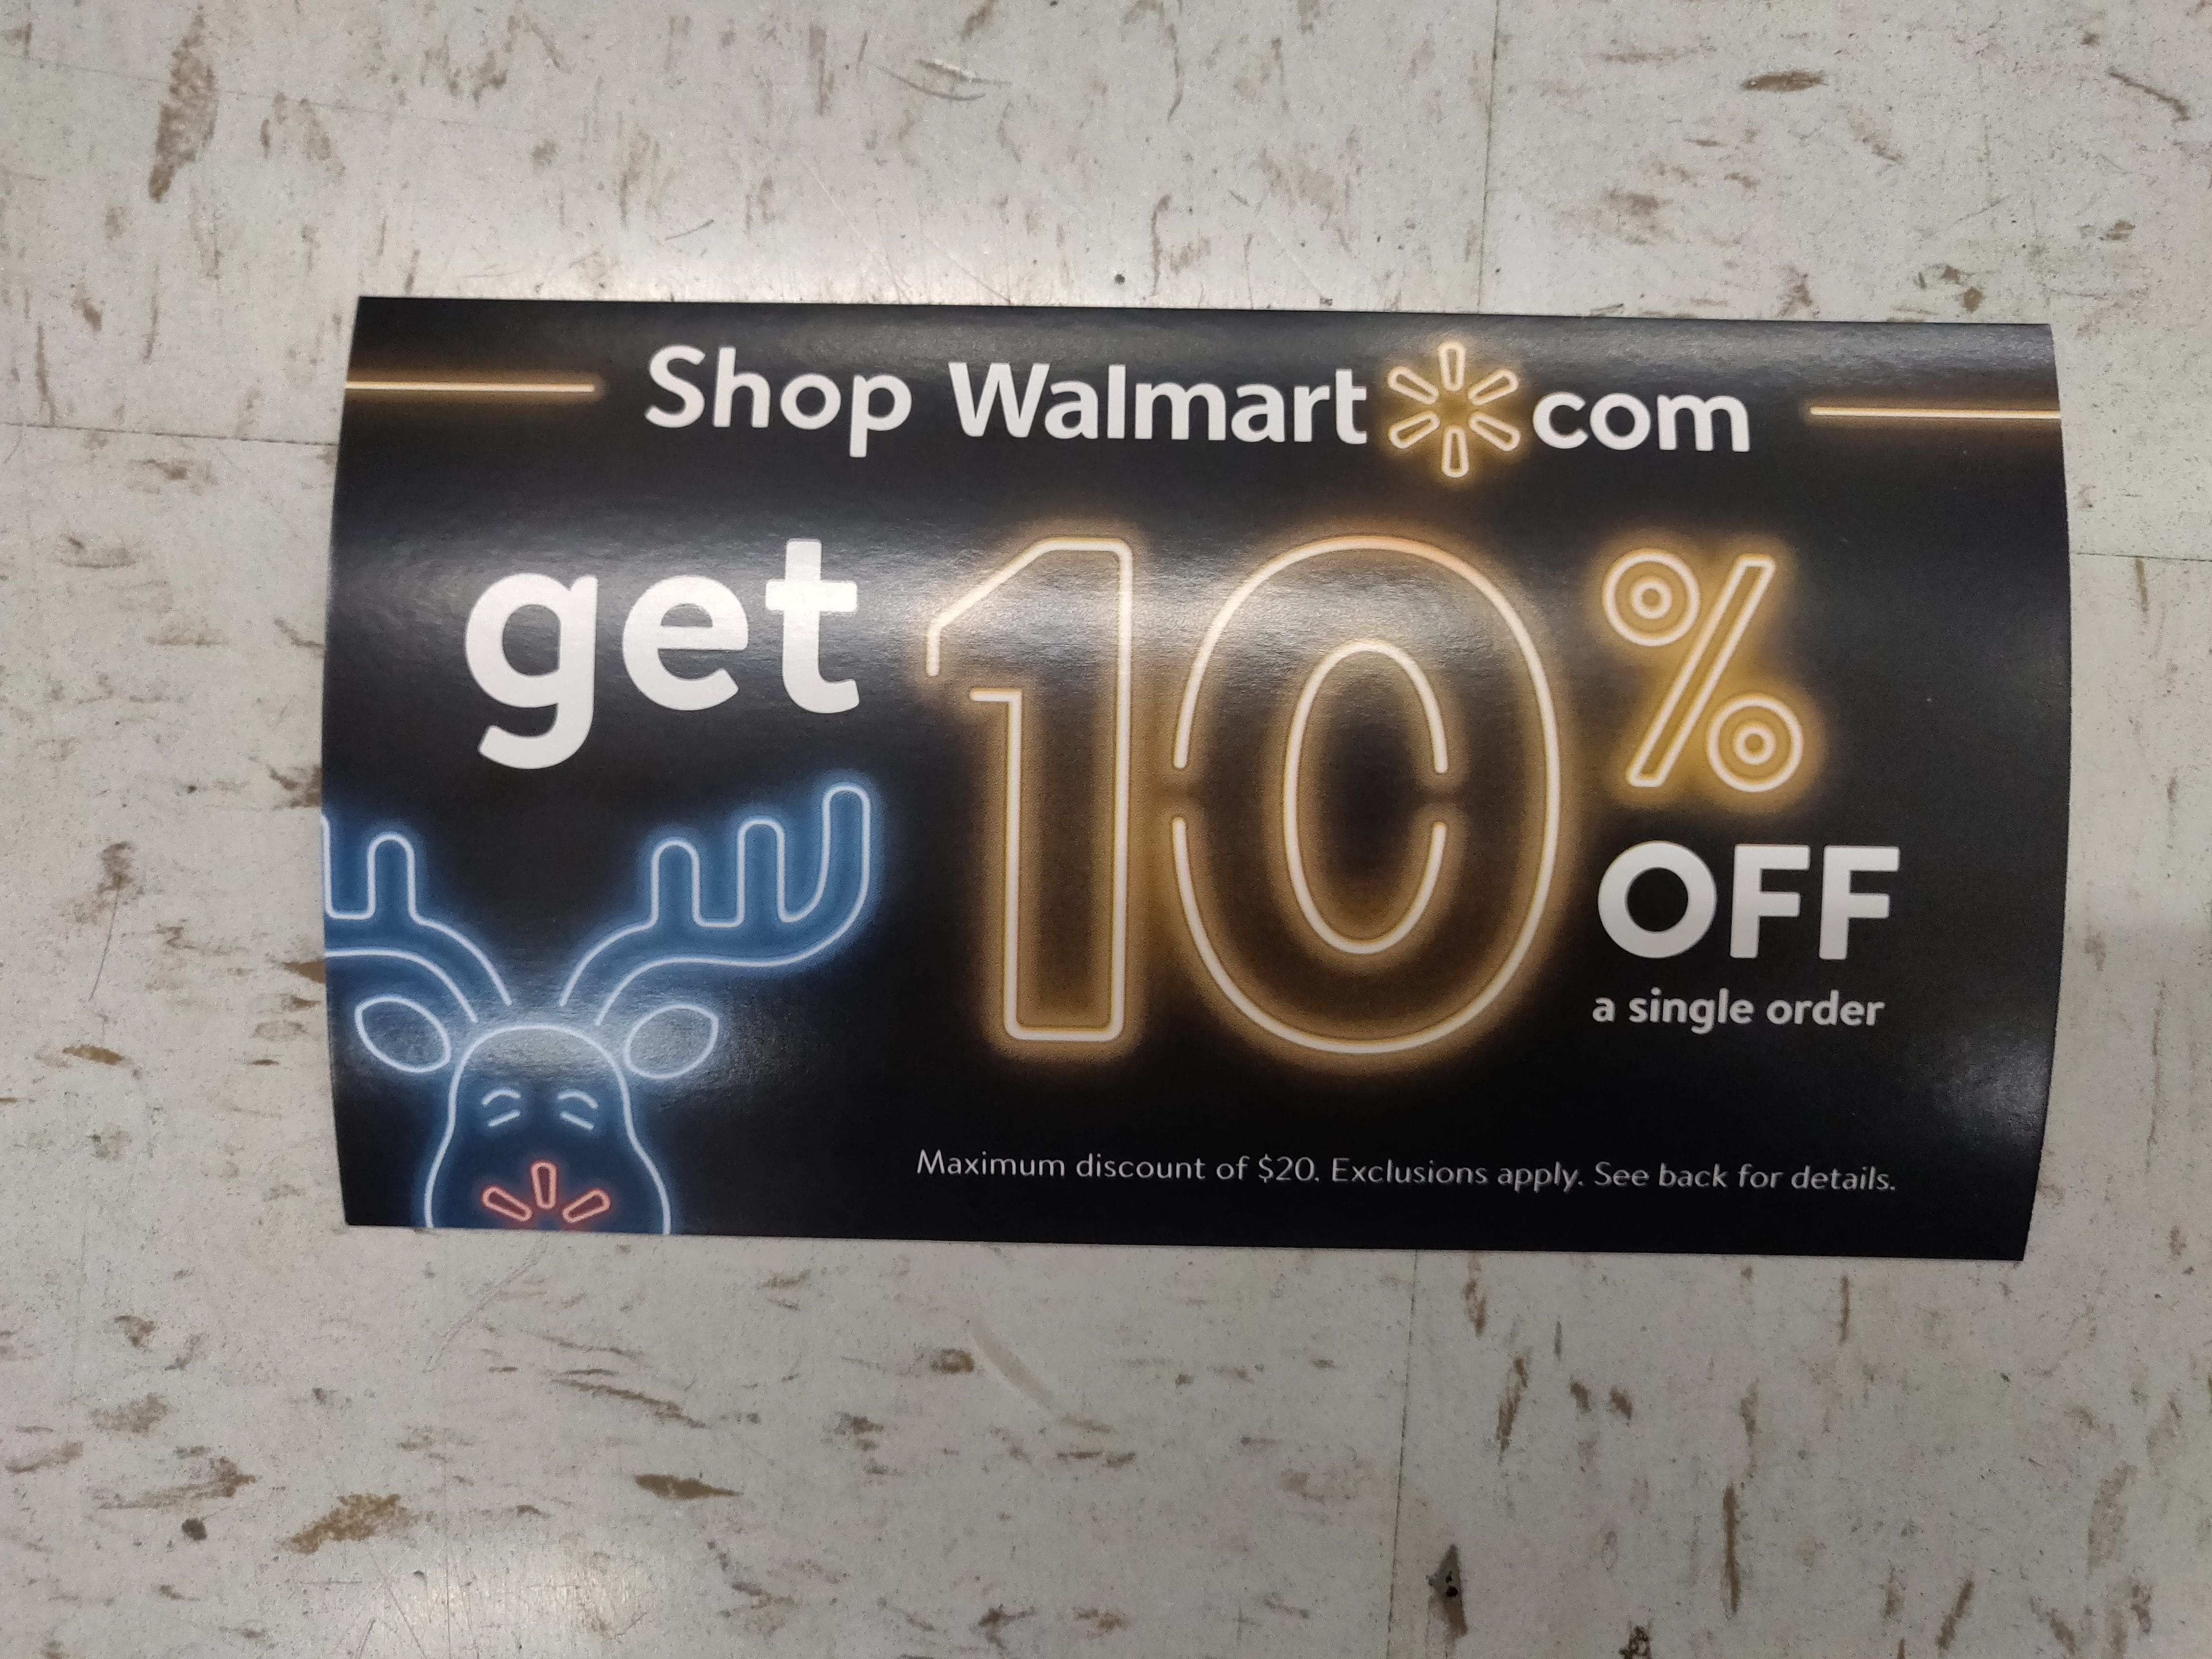 Get 10% off Walmart com coupon code (up to $20 discount